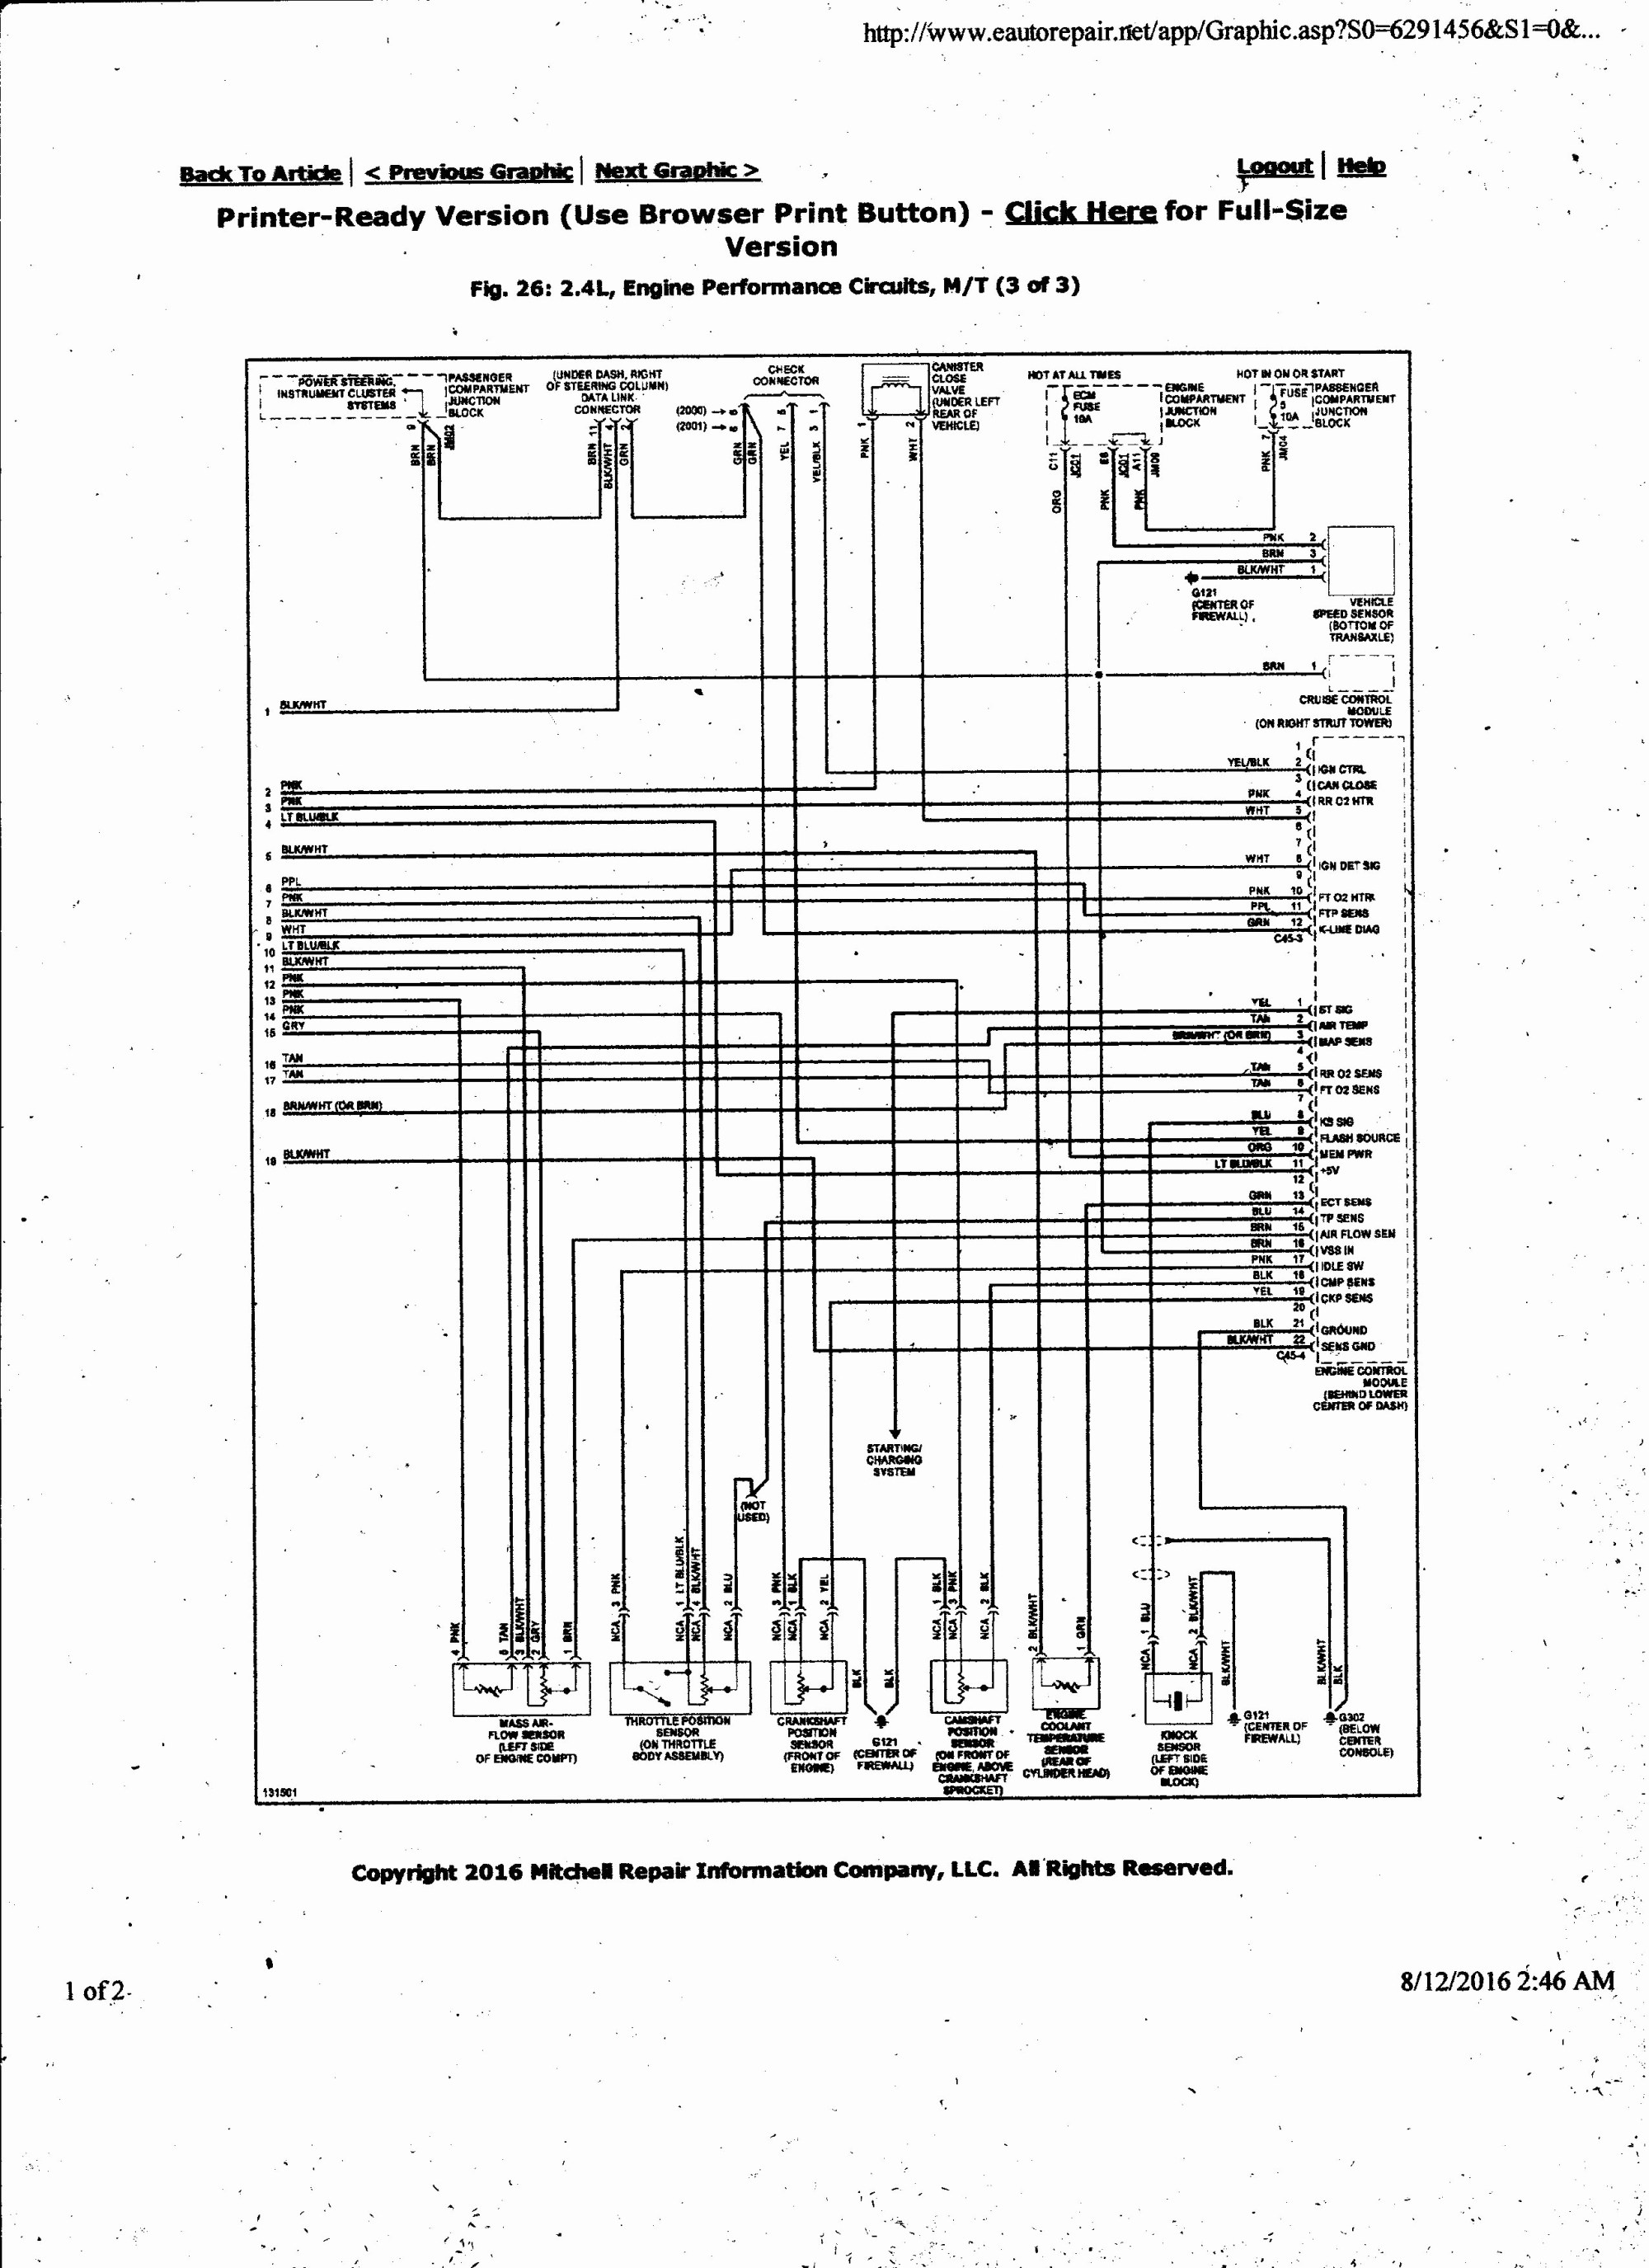 hight resolution of 03 hyundai santa fe wiring diagram wiring library 2001 hyundai elantra stereo wiring diagram 2001 hyundai elantra wiring diagram